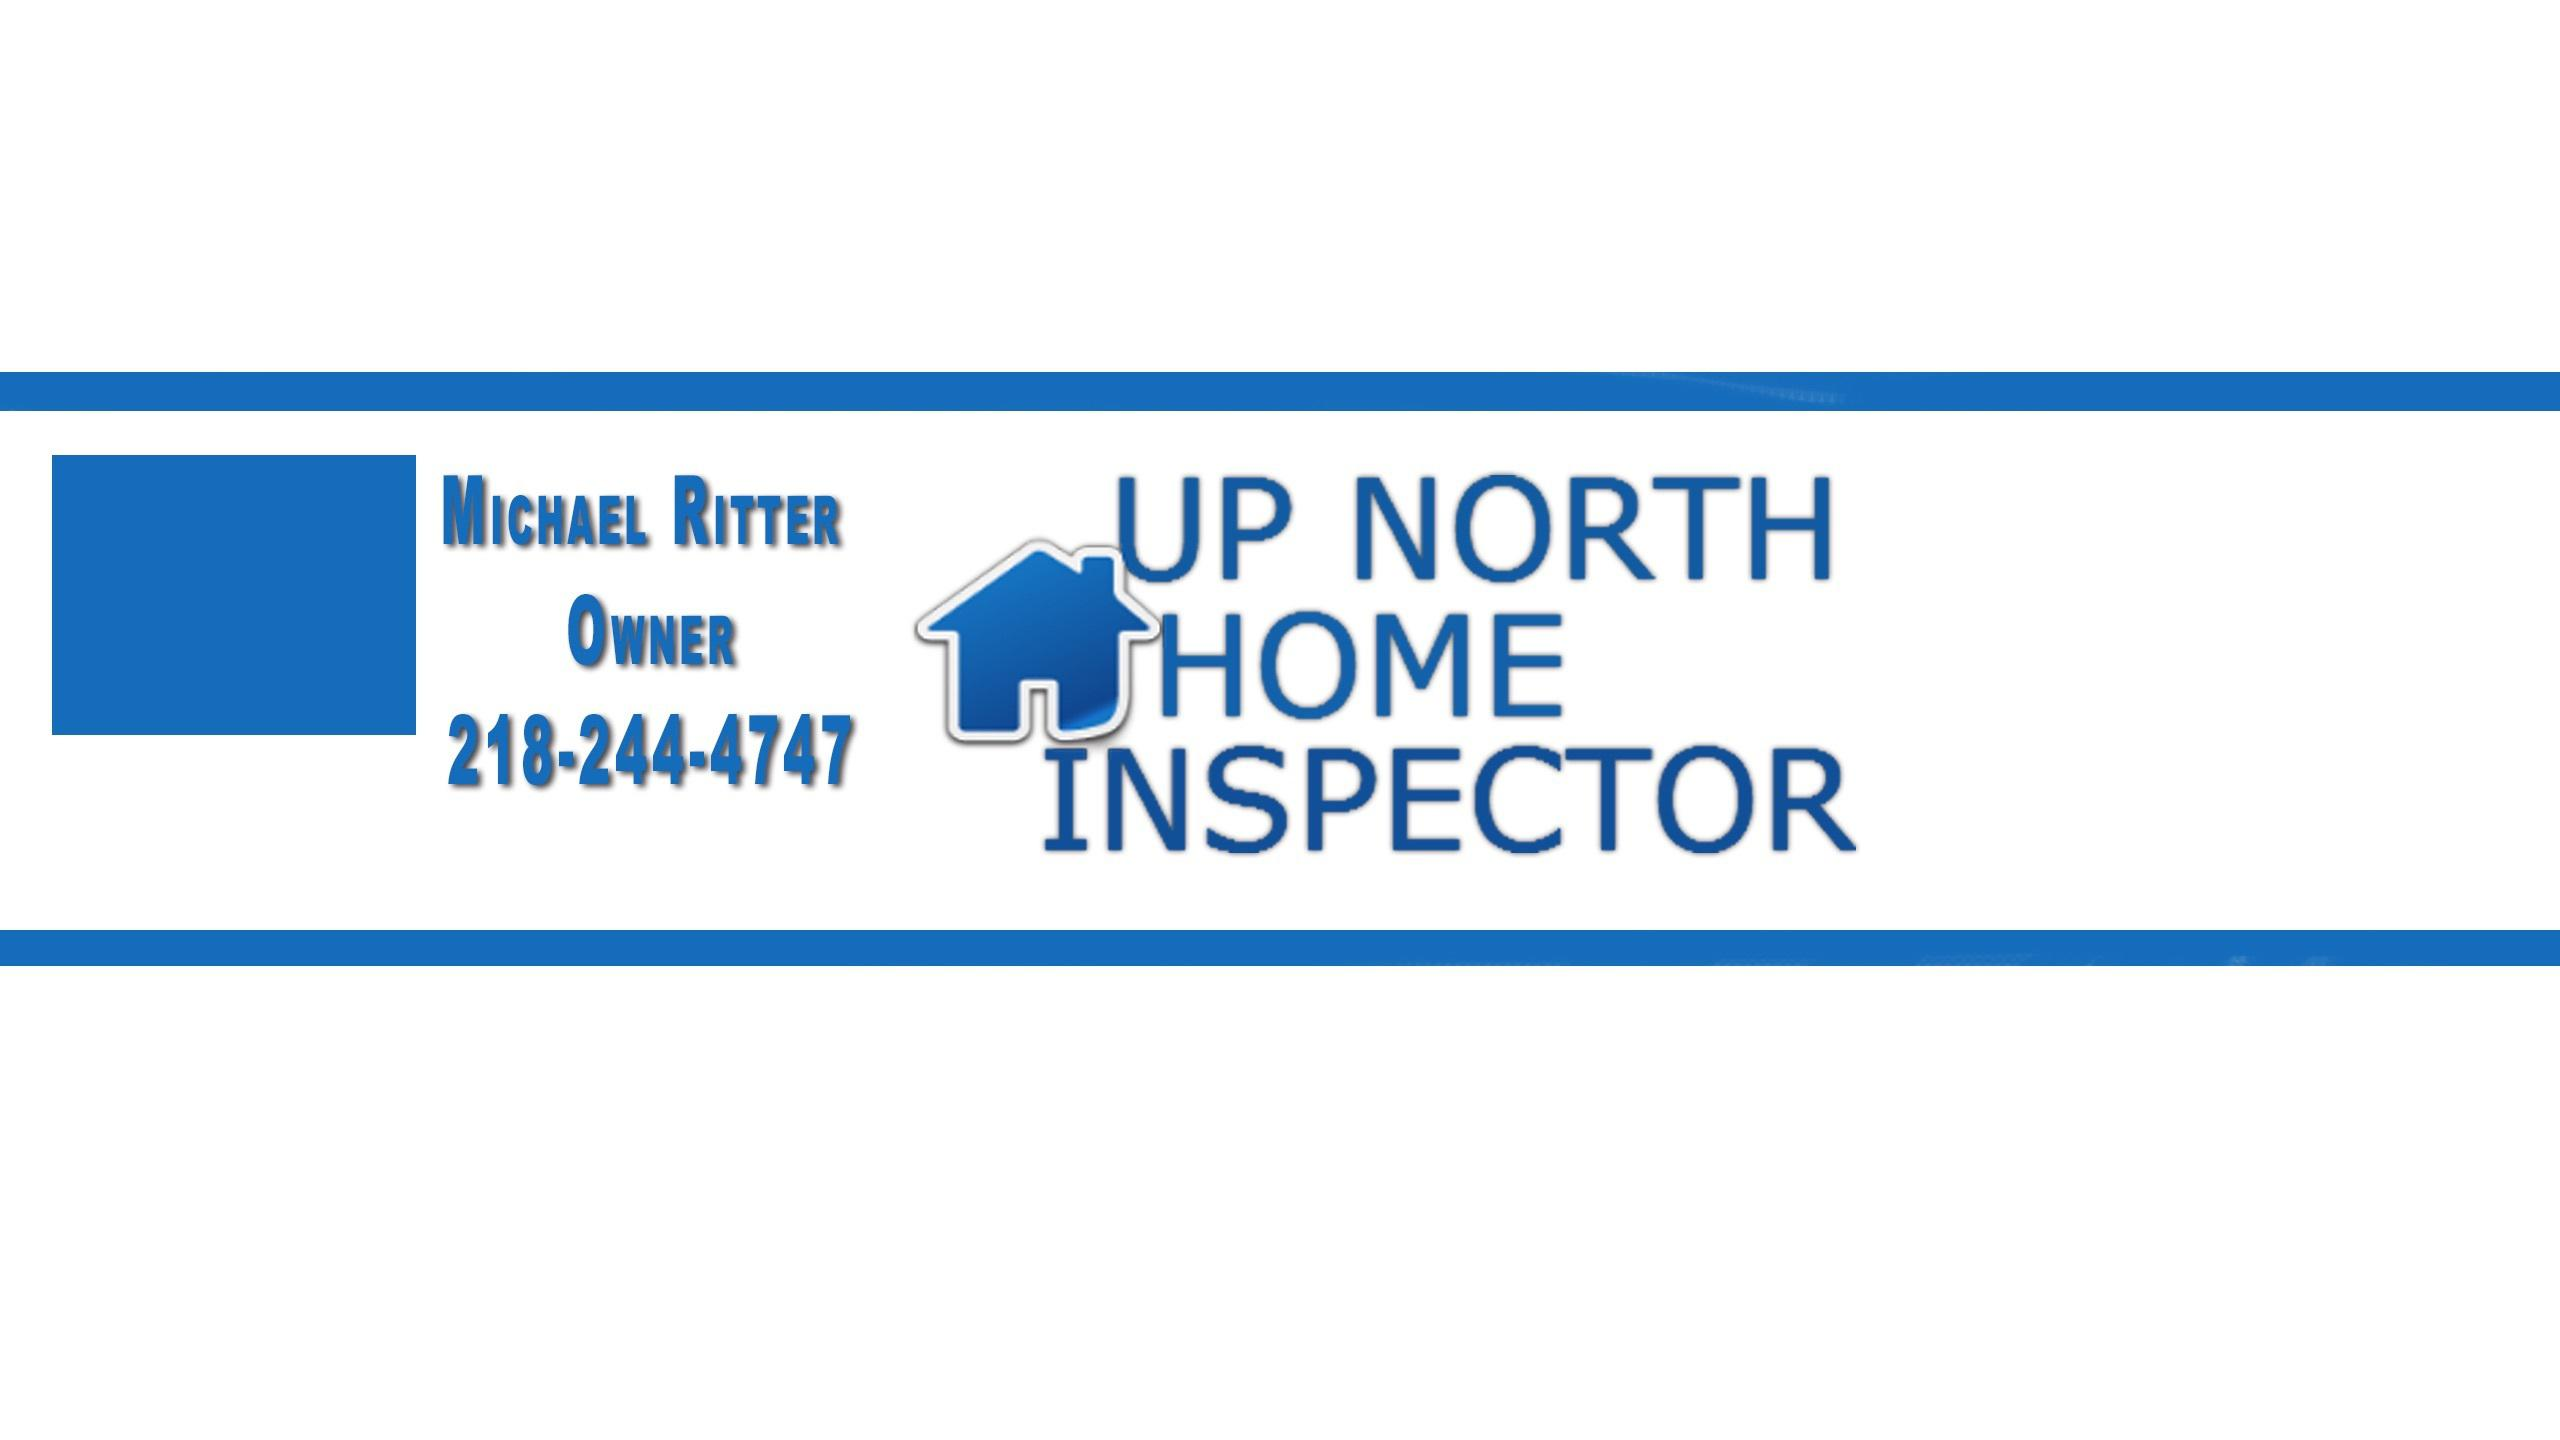 Upnorth Home Inspector, LLC image 1